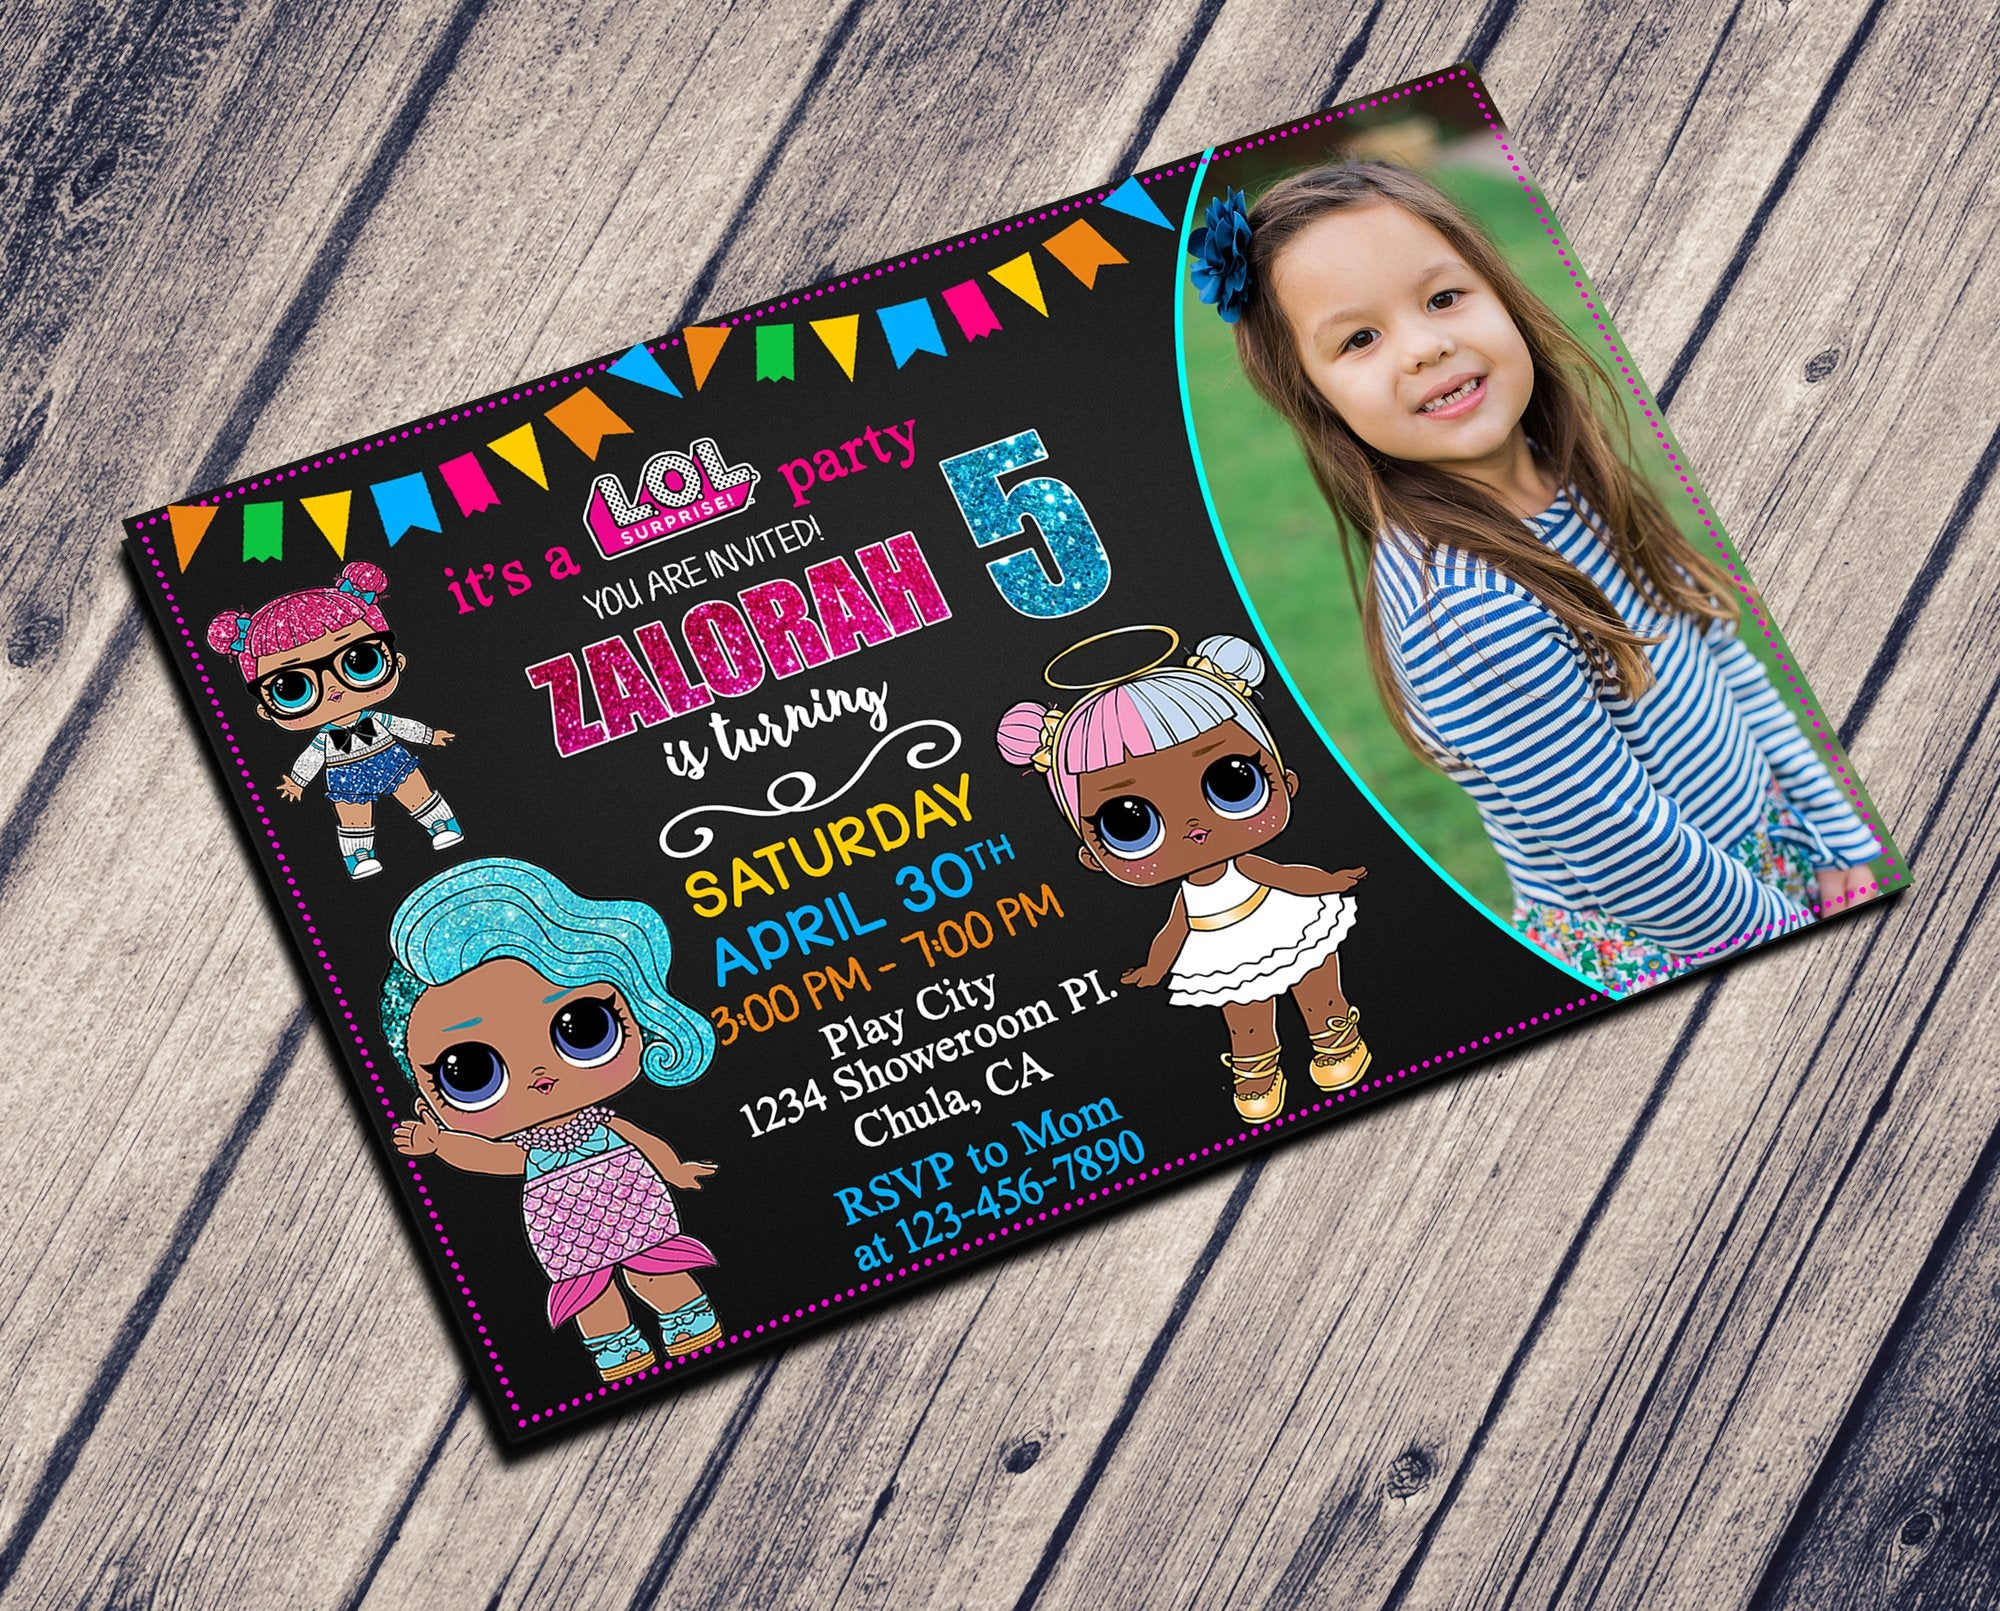 LOL DOLL Birthday invitation with photo, available on 4X6 or 5X7 size and JPG or PDF file type.